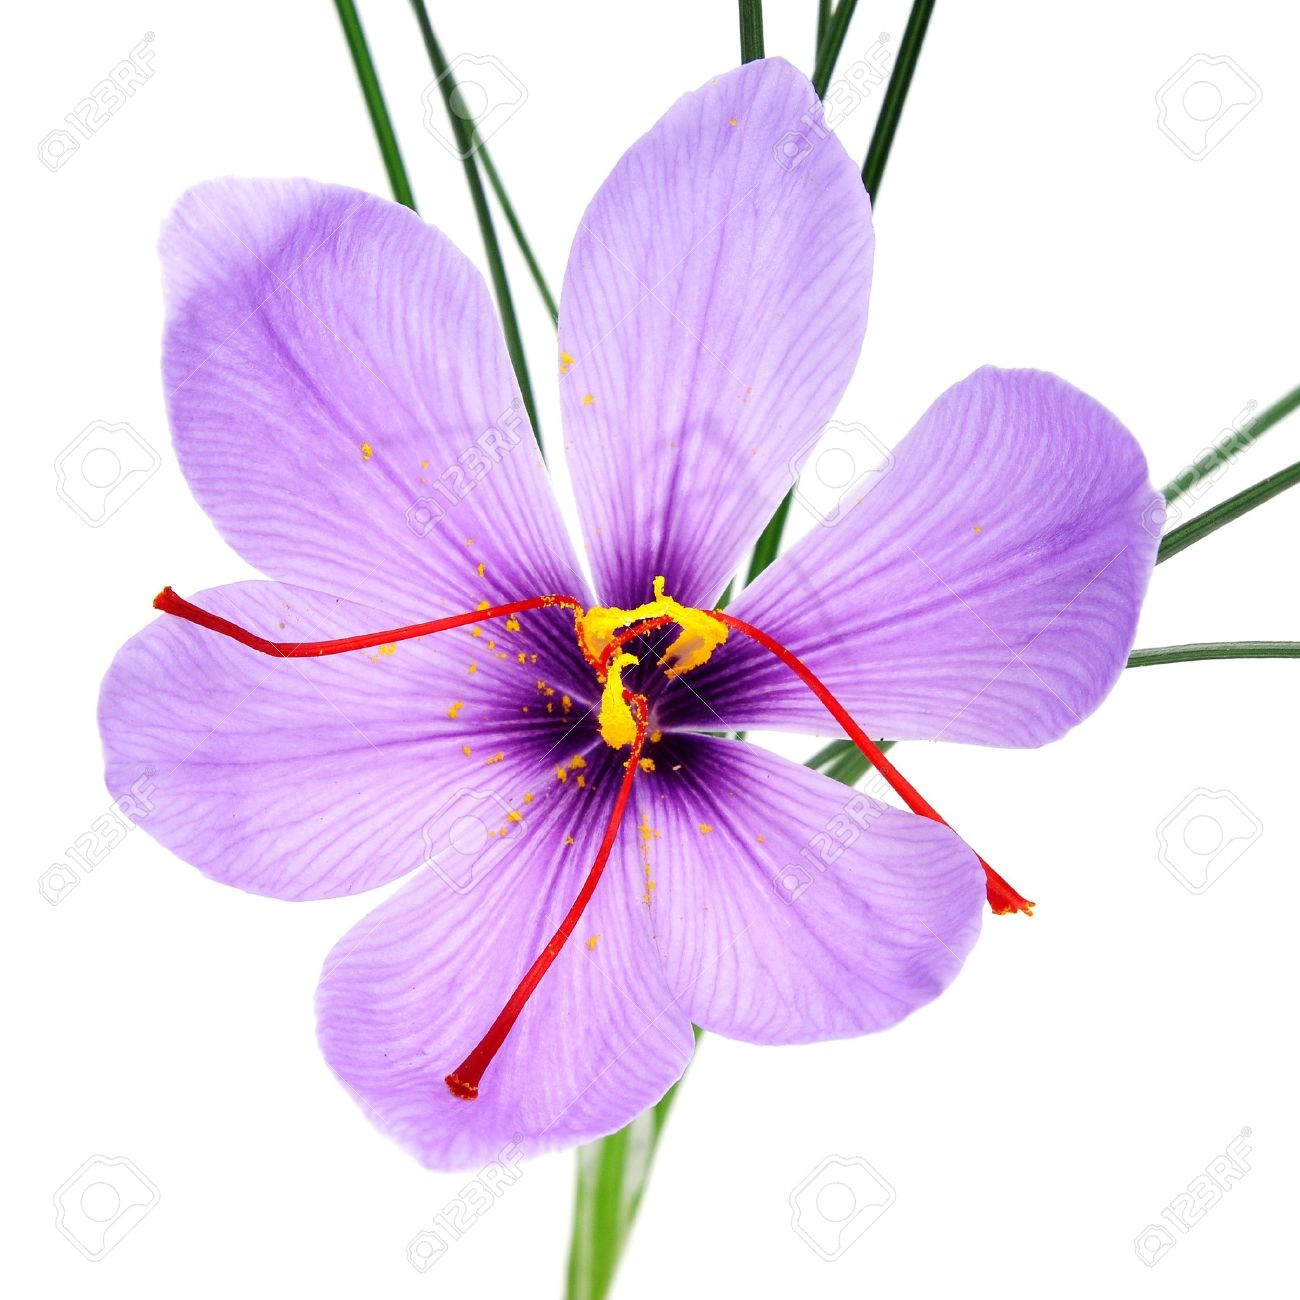 A Saffron Flower On A White Background Stock Photo Picture And